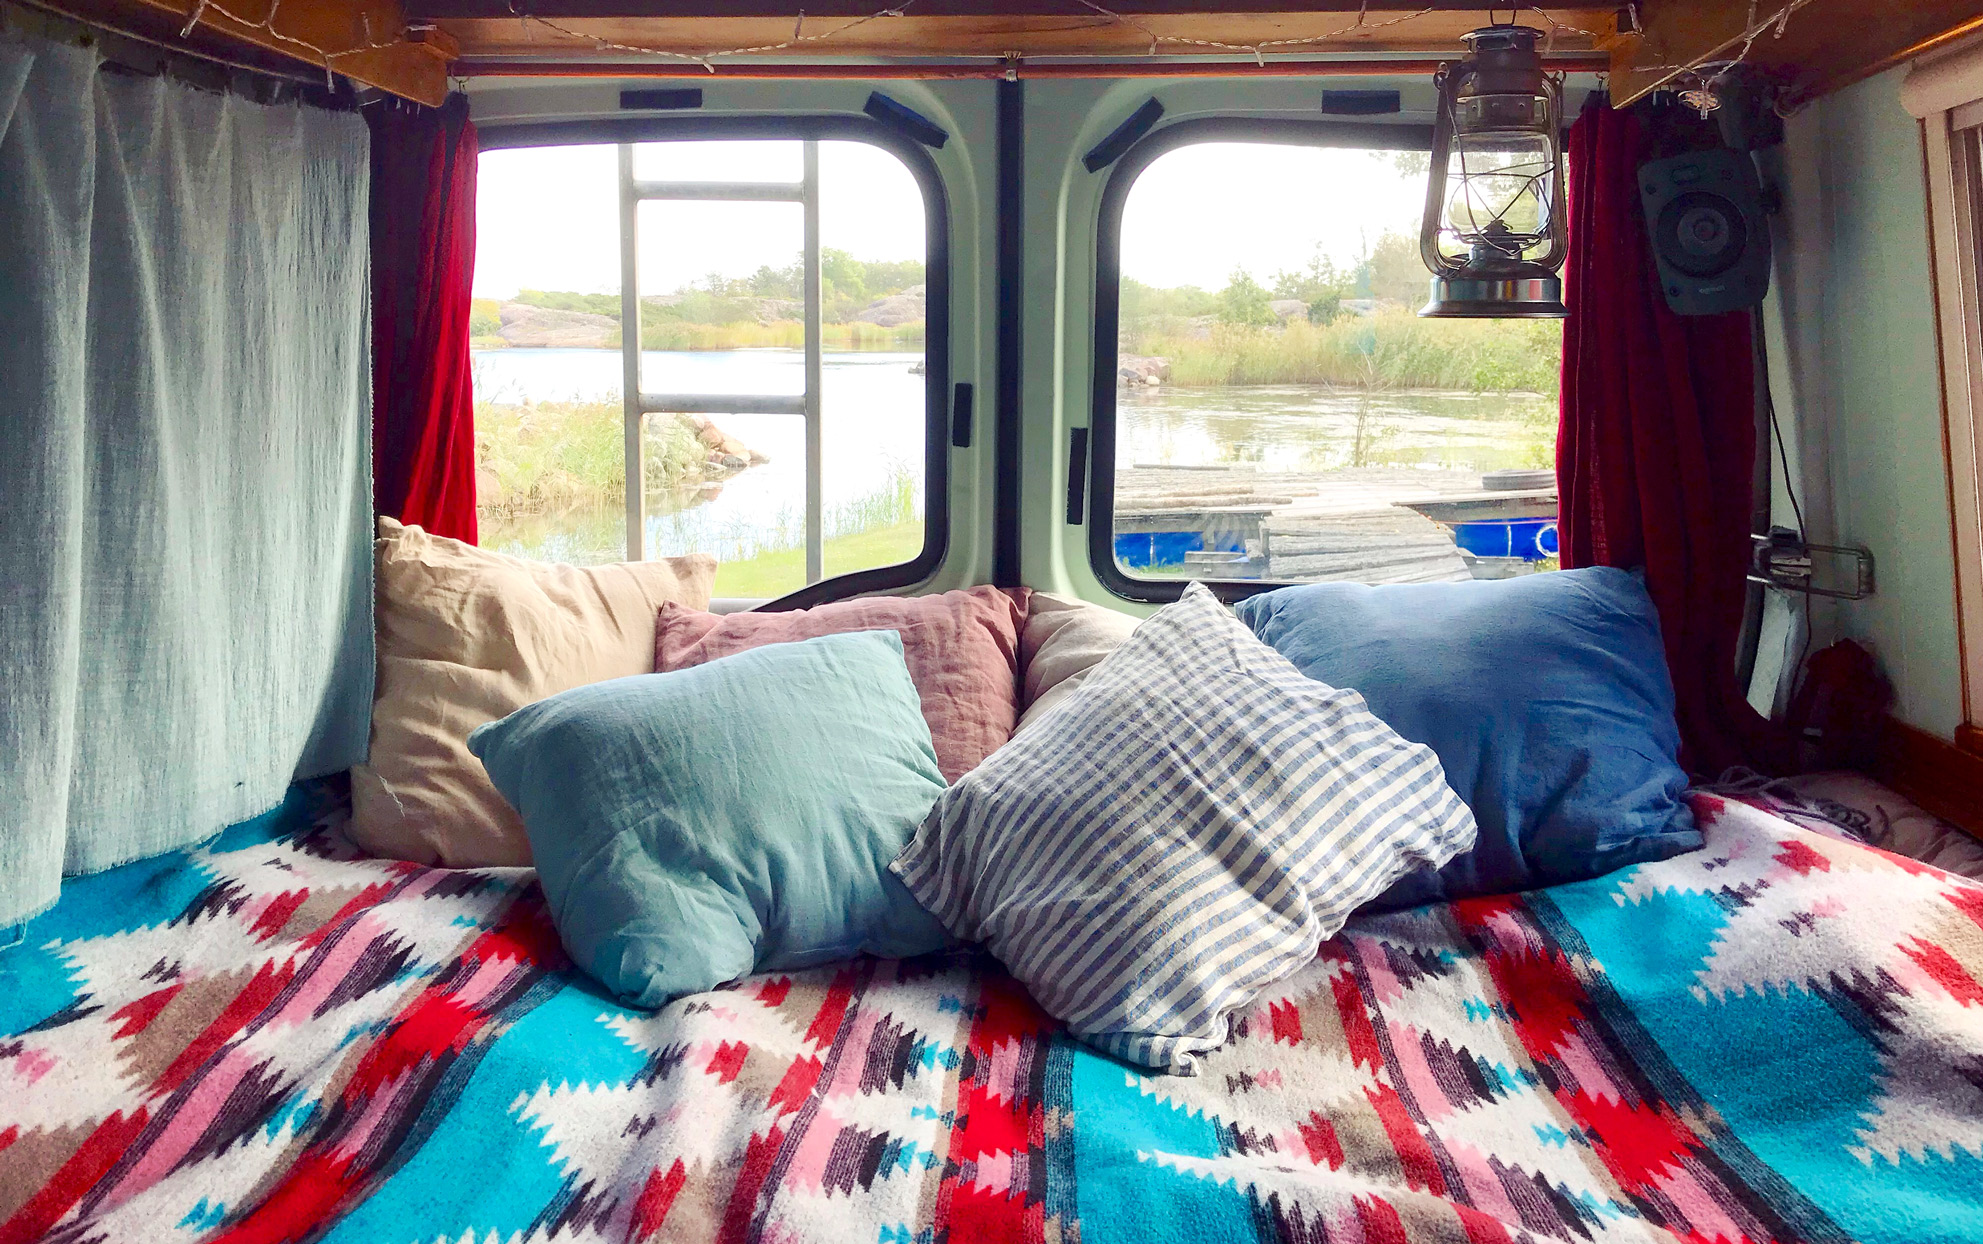 A bed in an RV vehicle